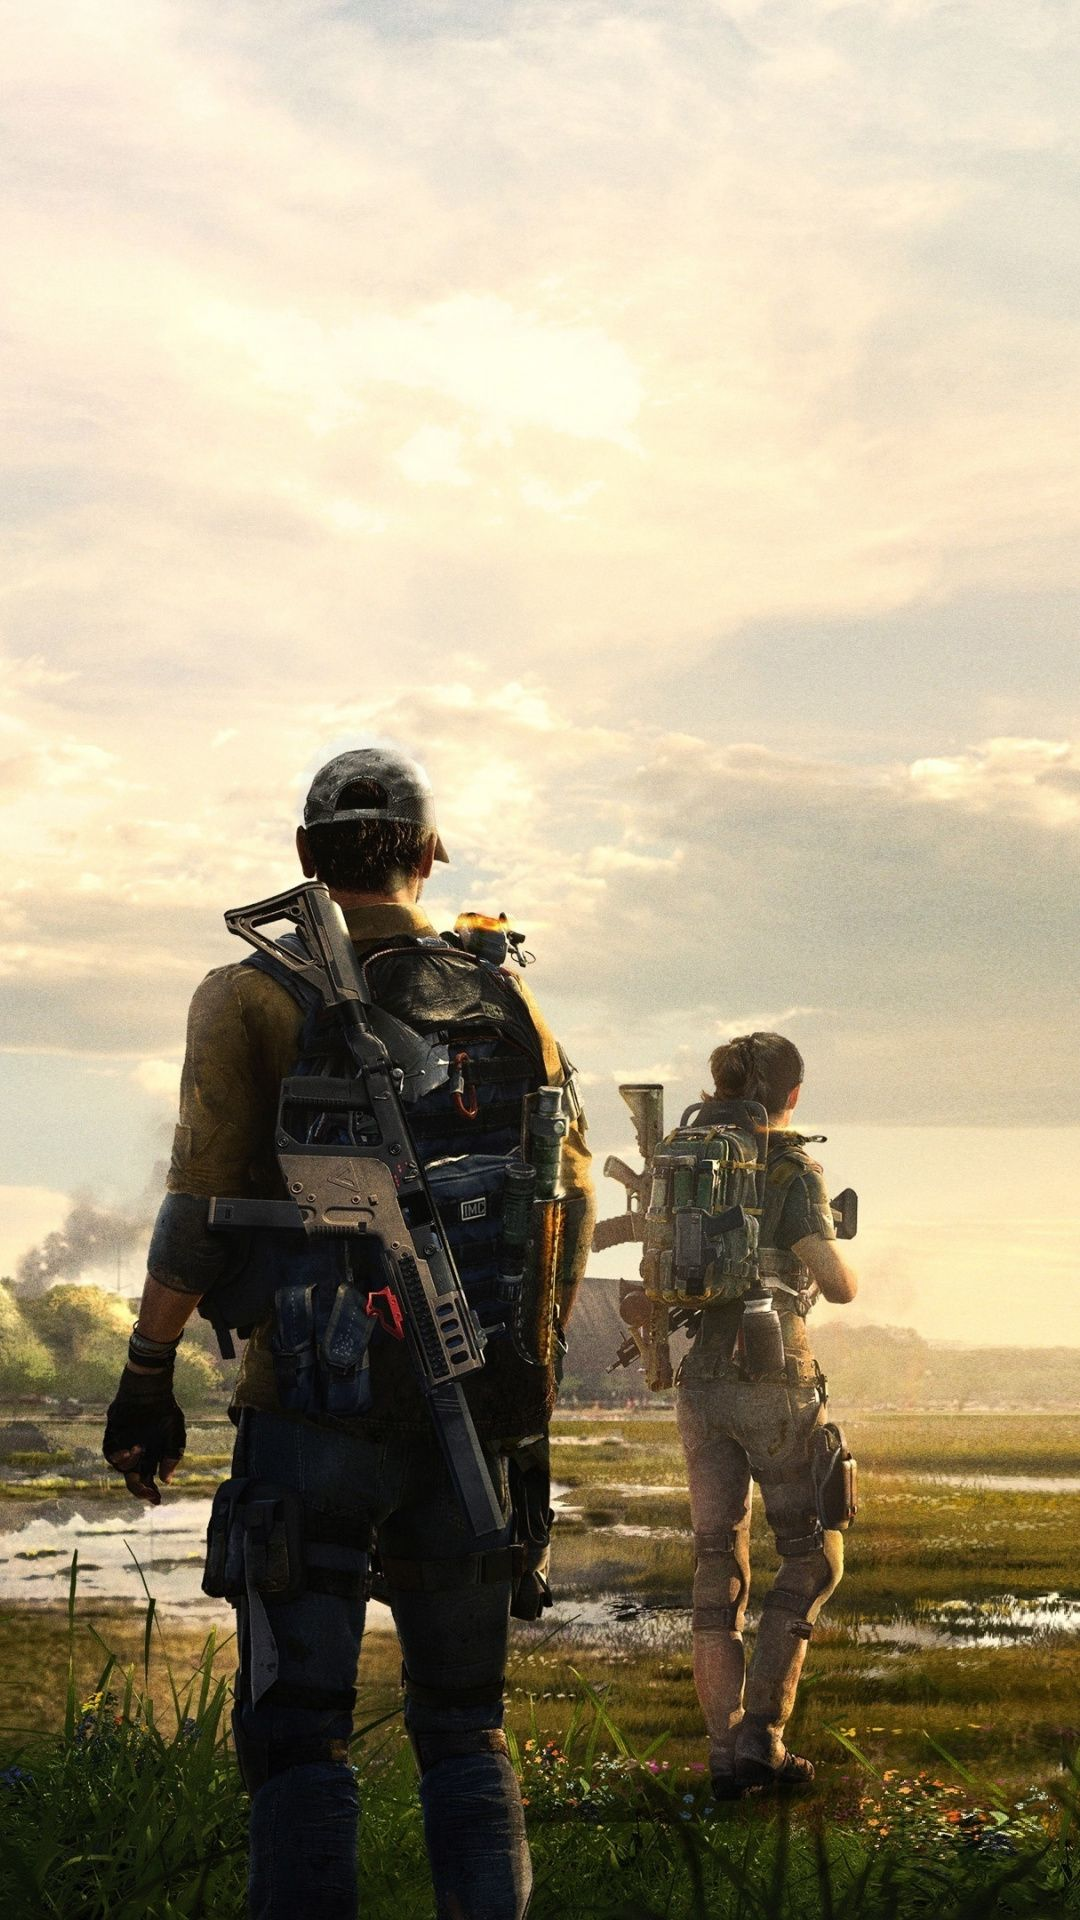 Tom Clancy S The Division 2 Video Game Landscape Soldiers